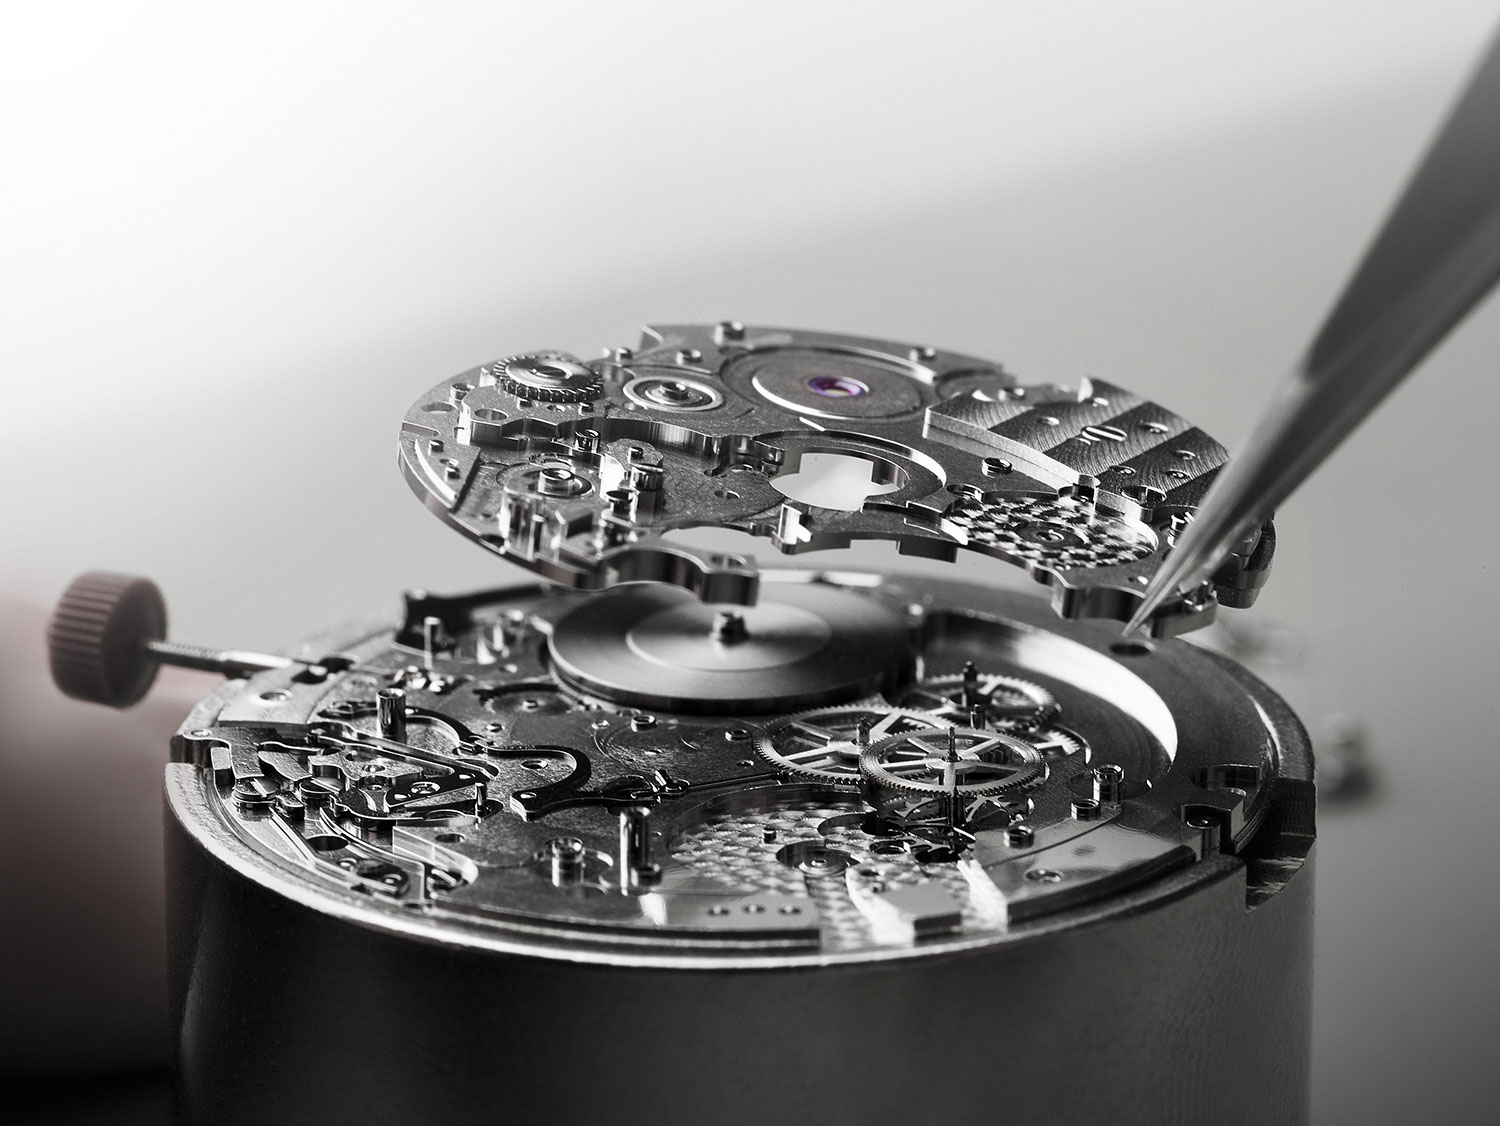 Assembling the BVL 318 caliber, one can see just how brilliantly the movement is designed